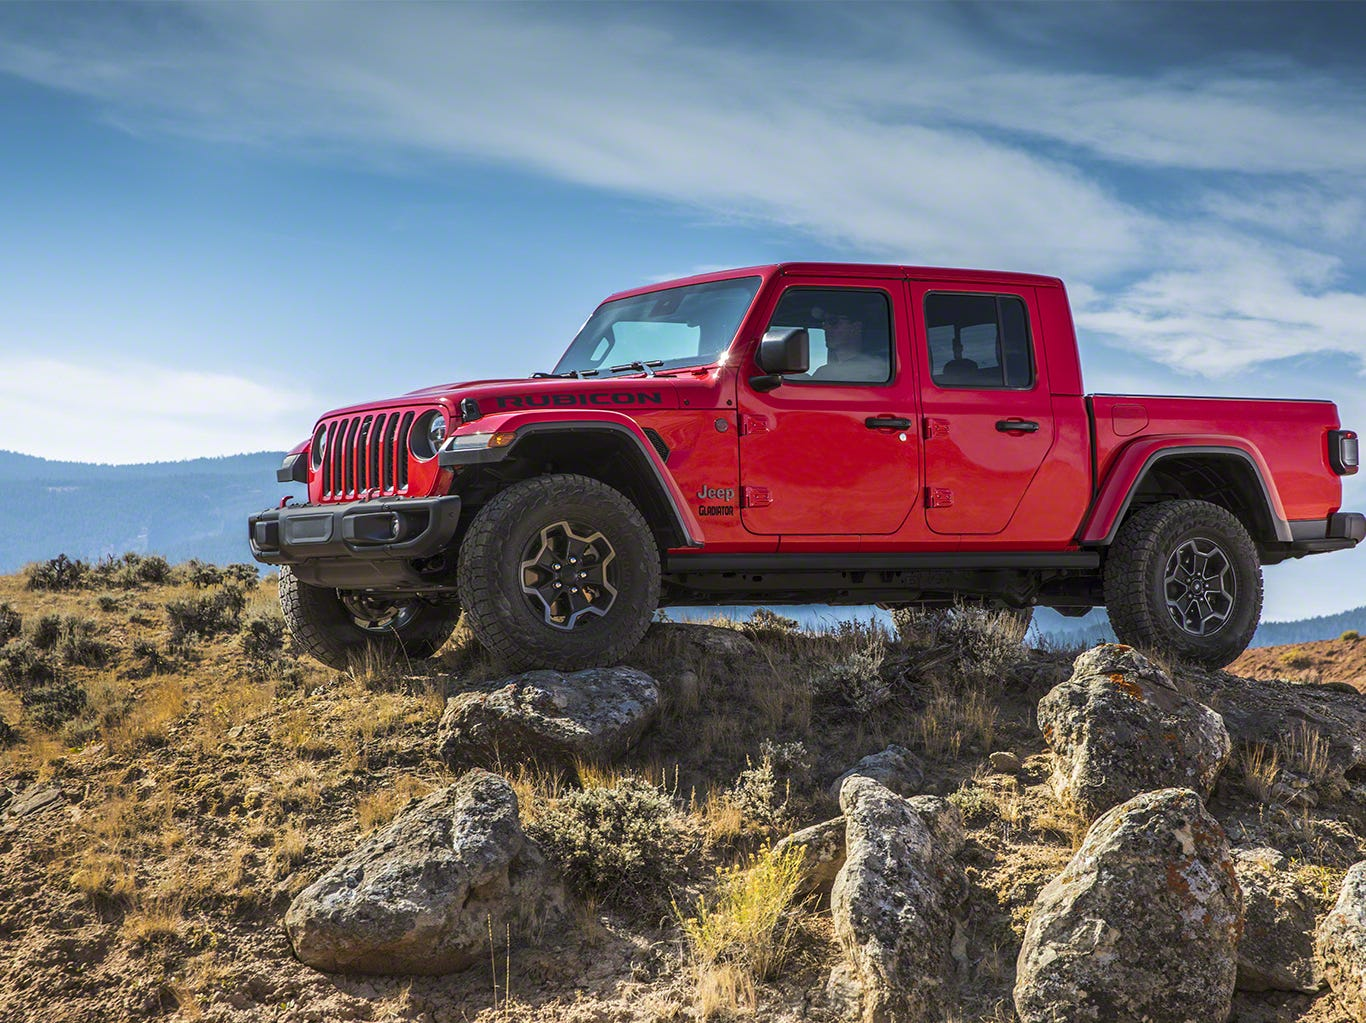 The 2020 Jeep Gladiator's body-on-frame design uses advanced materials and engineering to be lightweight, yet stiff and durable, and features an all-new lightweight, high-strength steel frame.